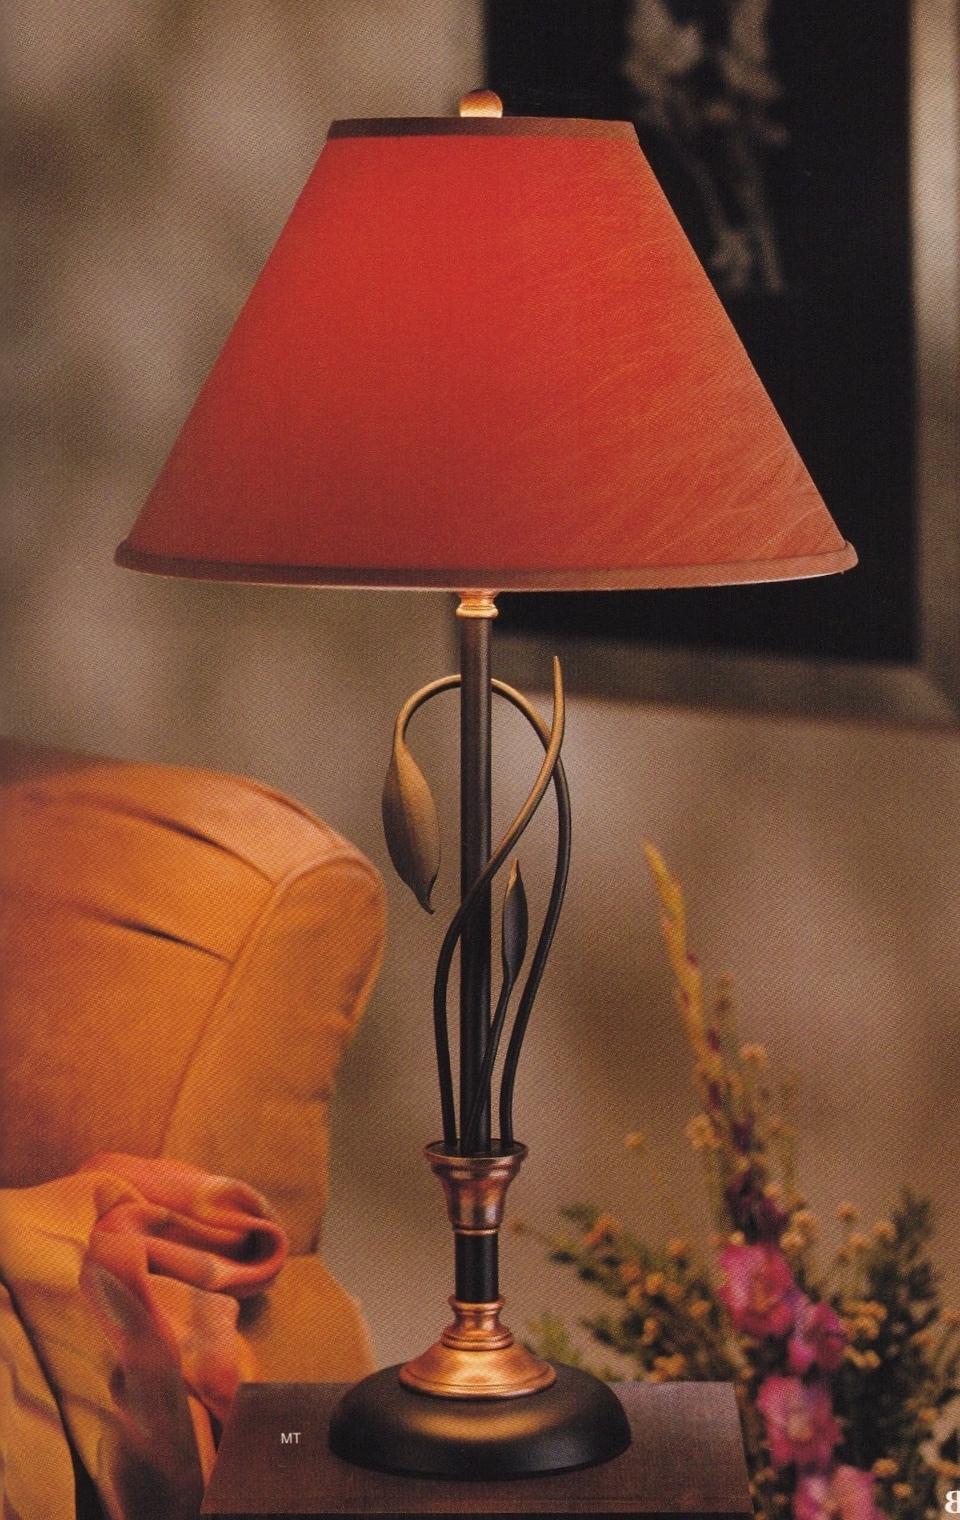 Wrought Iron Living Room Table Lamps Intended For Well Known Black Wrought Iron Table Lamp Remarkable Shades Argos Parts Kits Uk (View 13 of 20)